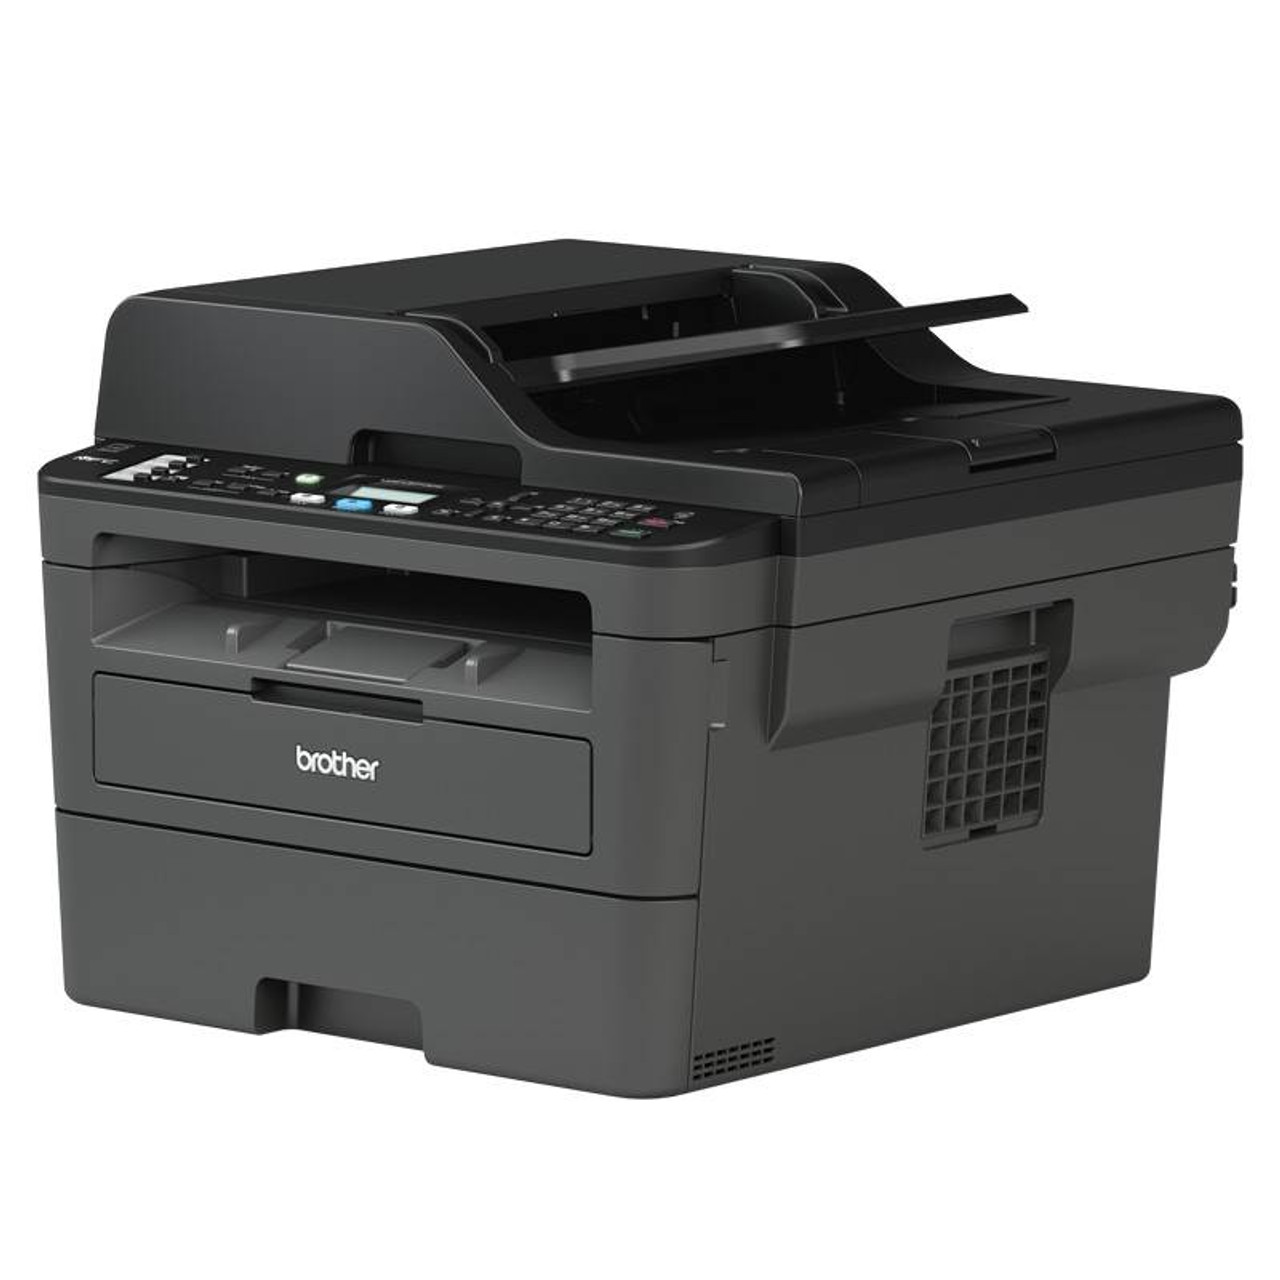 Product image for Brother MFC-L2710DW Monochrome Laser Printer   CX Computer Superstore